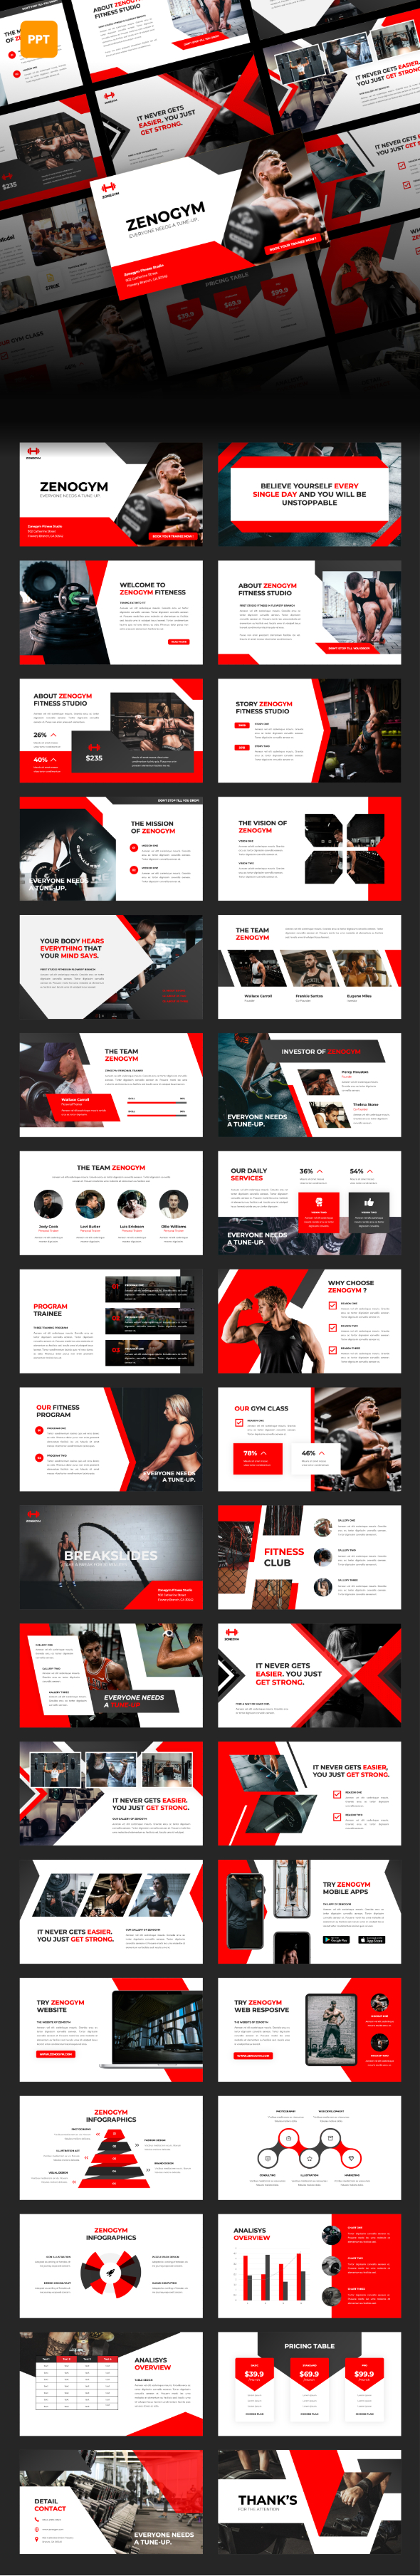 Zenogym - Fitness and Gym PowerPoint Template